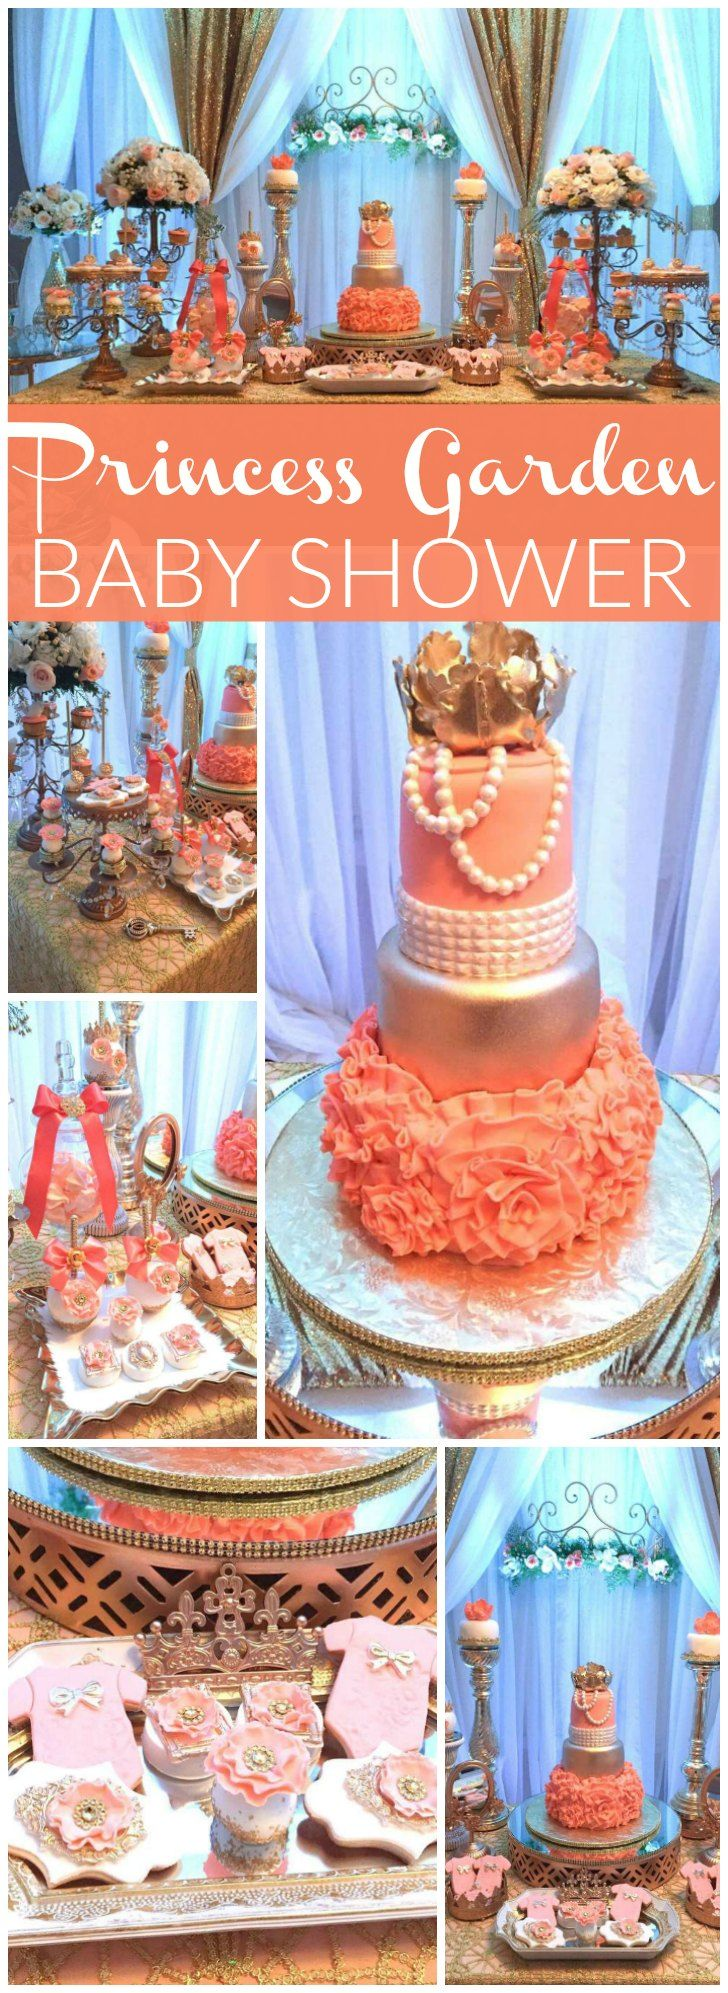 What A Lovely Coral And Gold Royal Princess Baby Shower See More Party Ideas At -1517